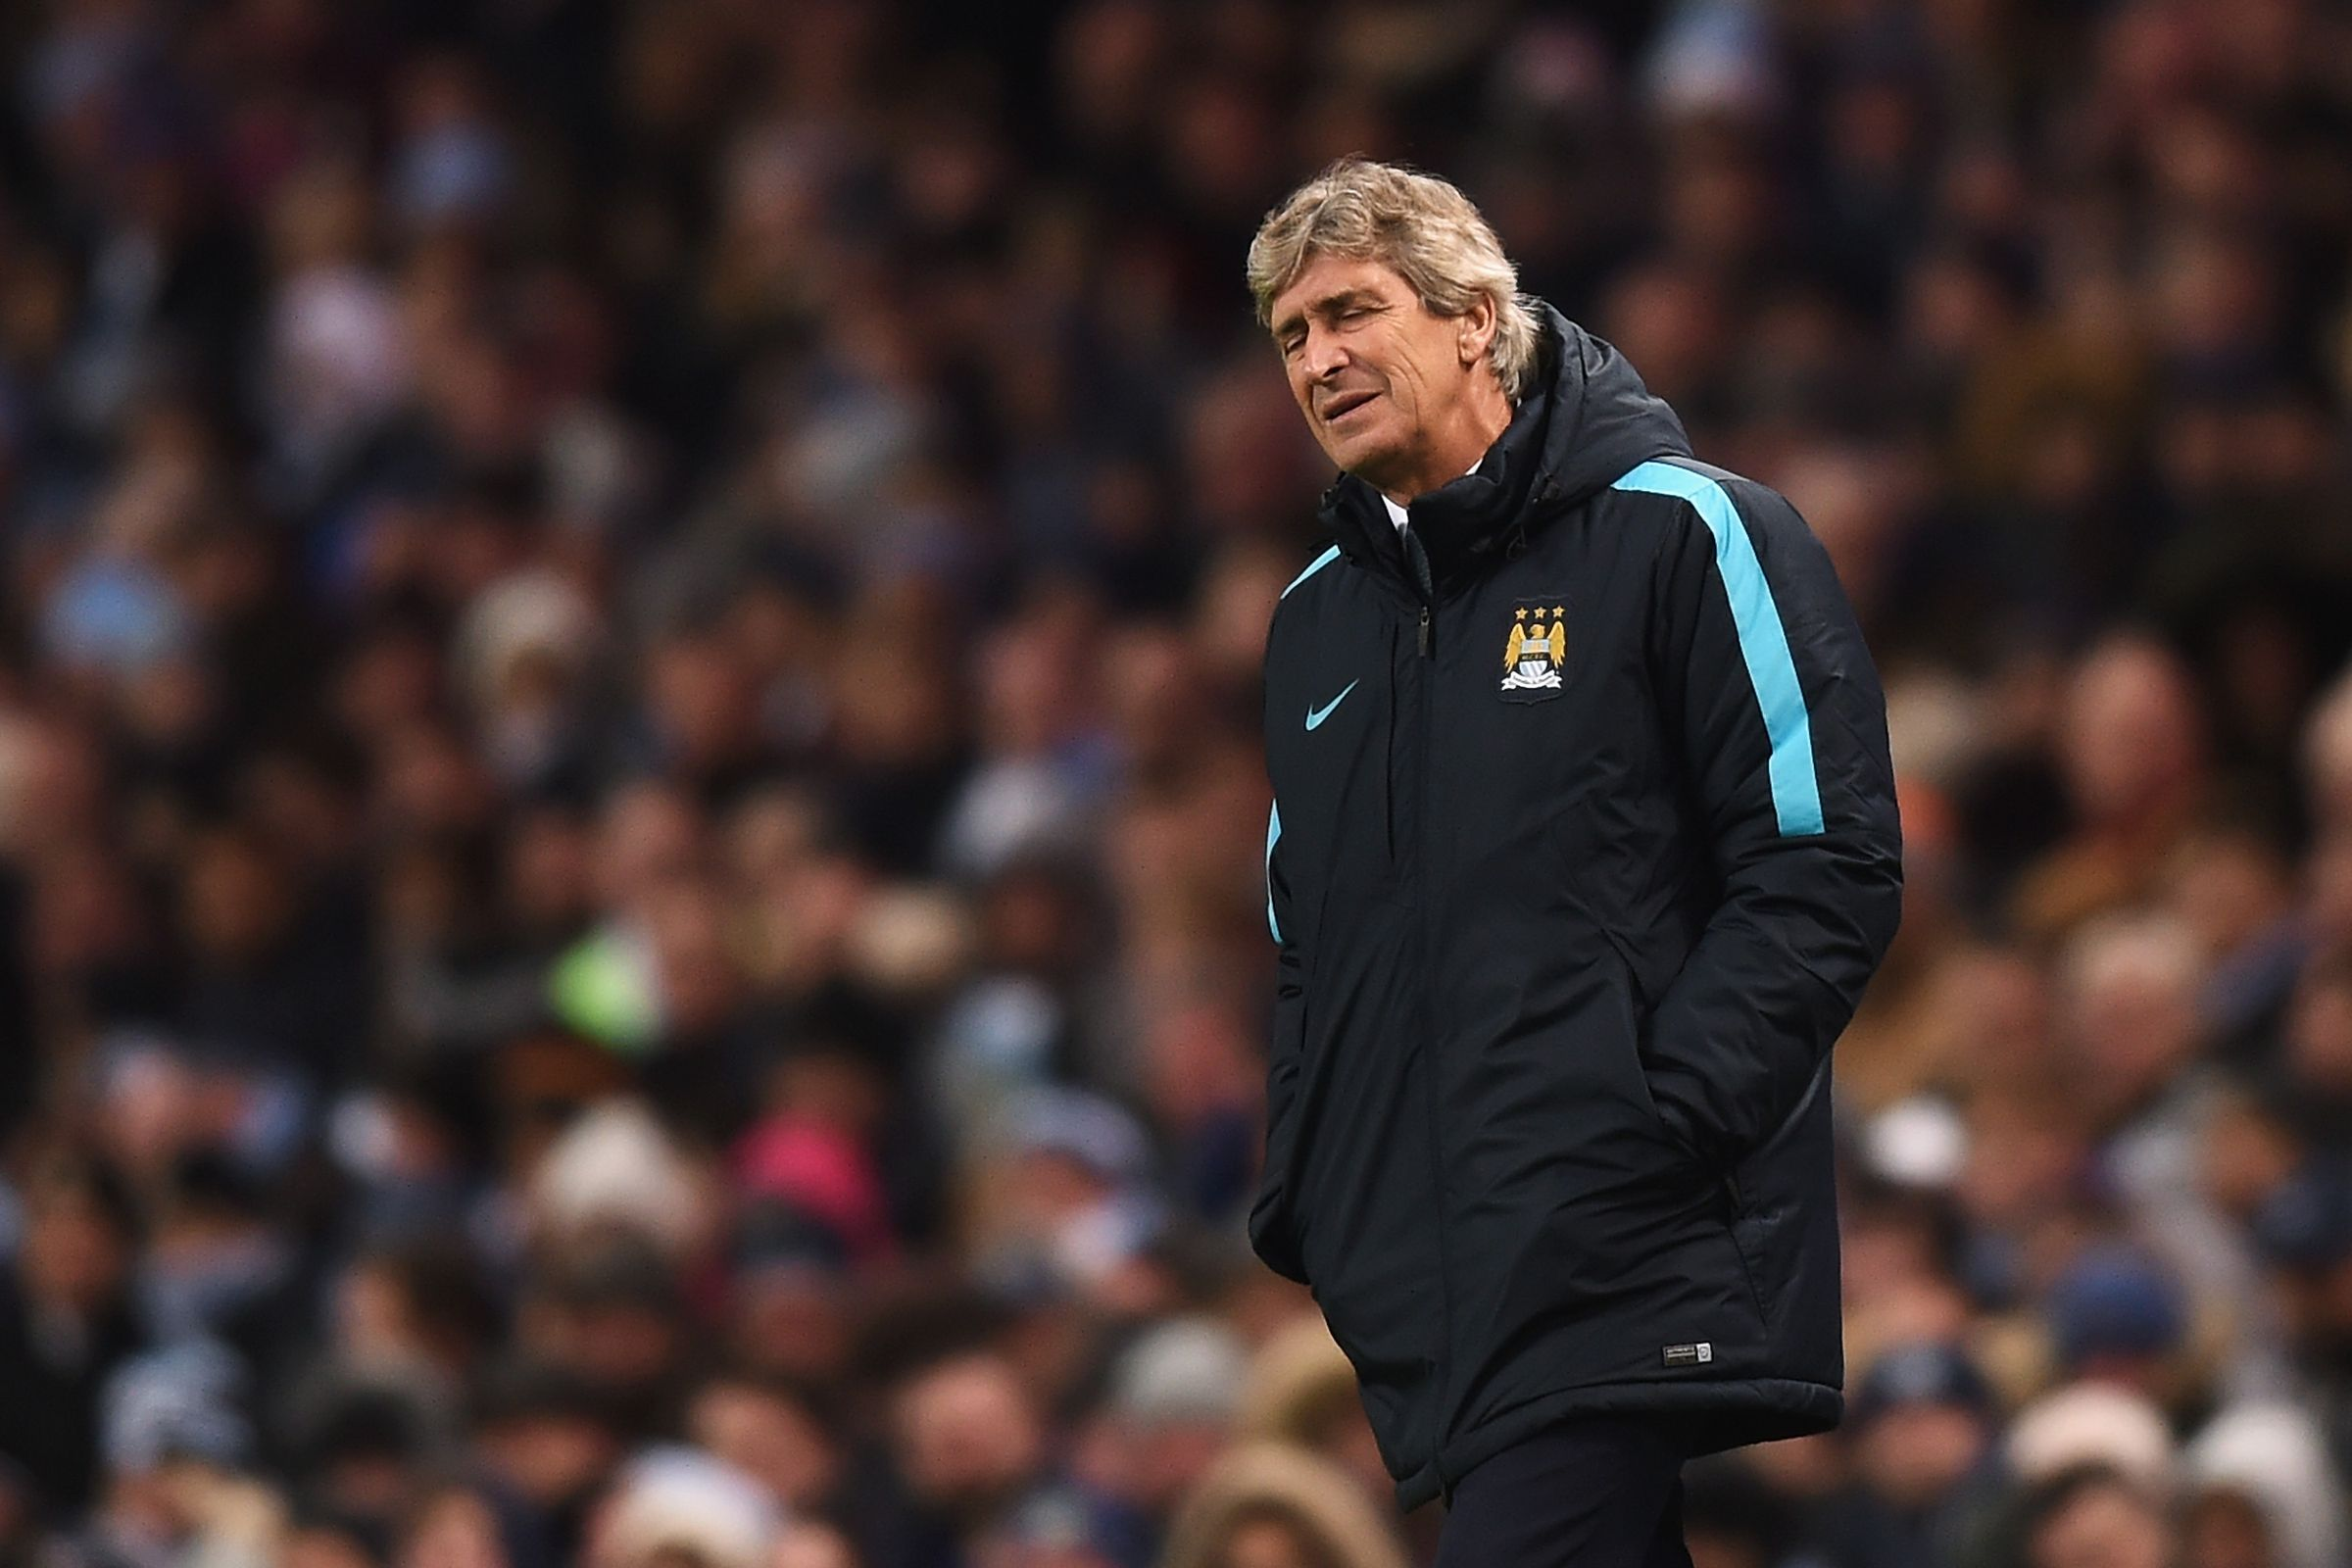 Pained MP - Pellegrini needs to swap anguish and anxiety for ecstacy and victory in Turin.